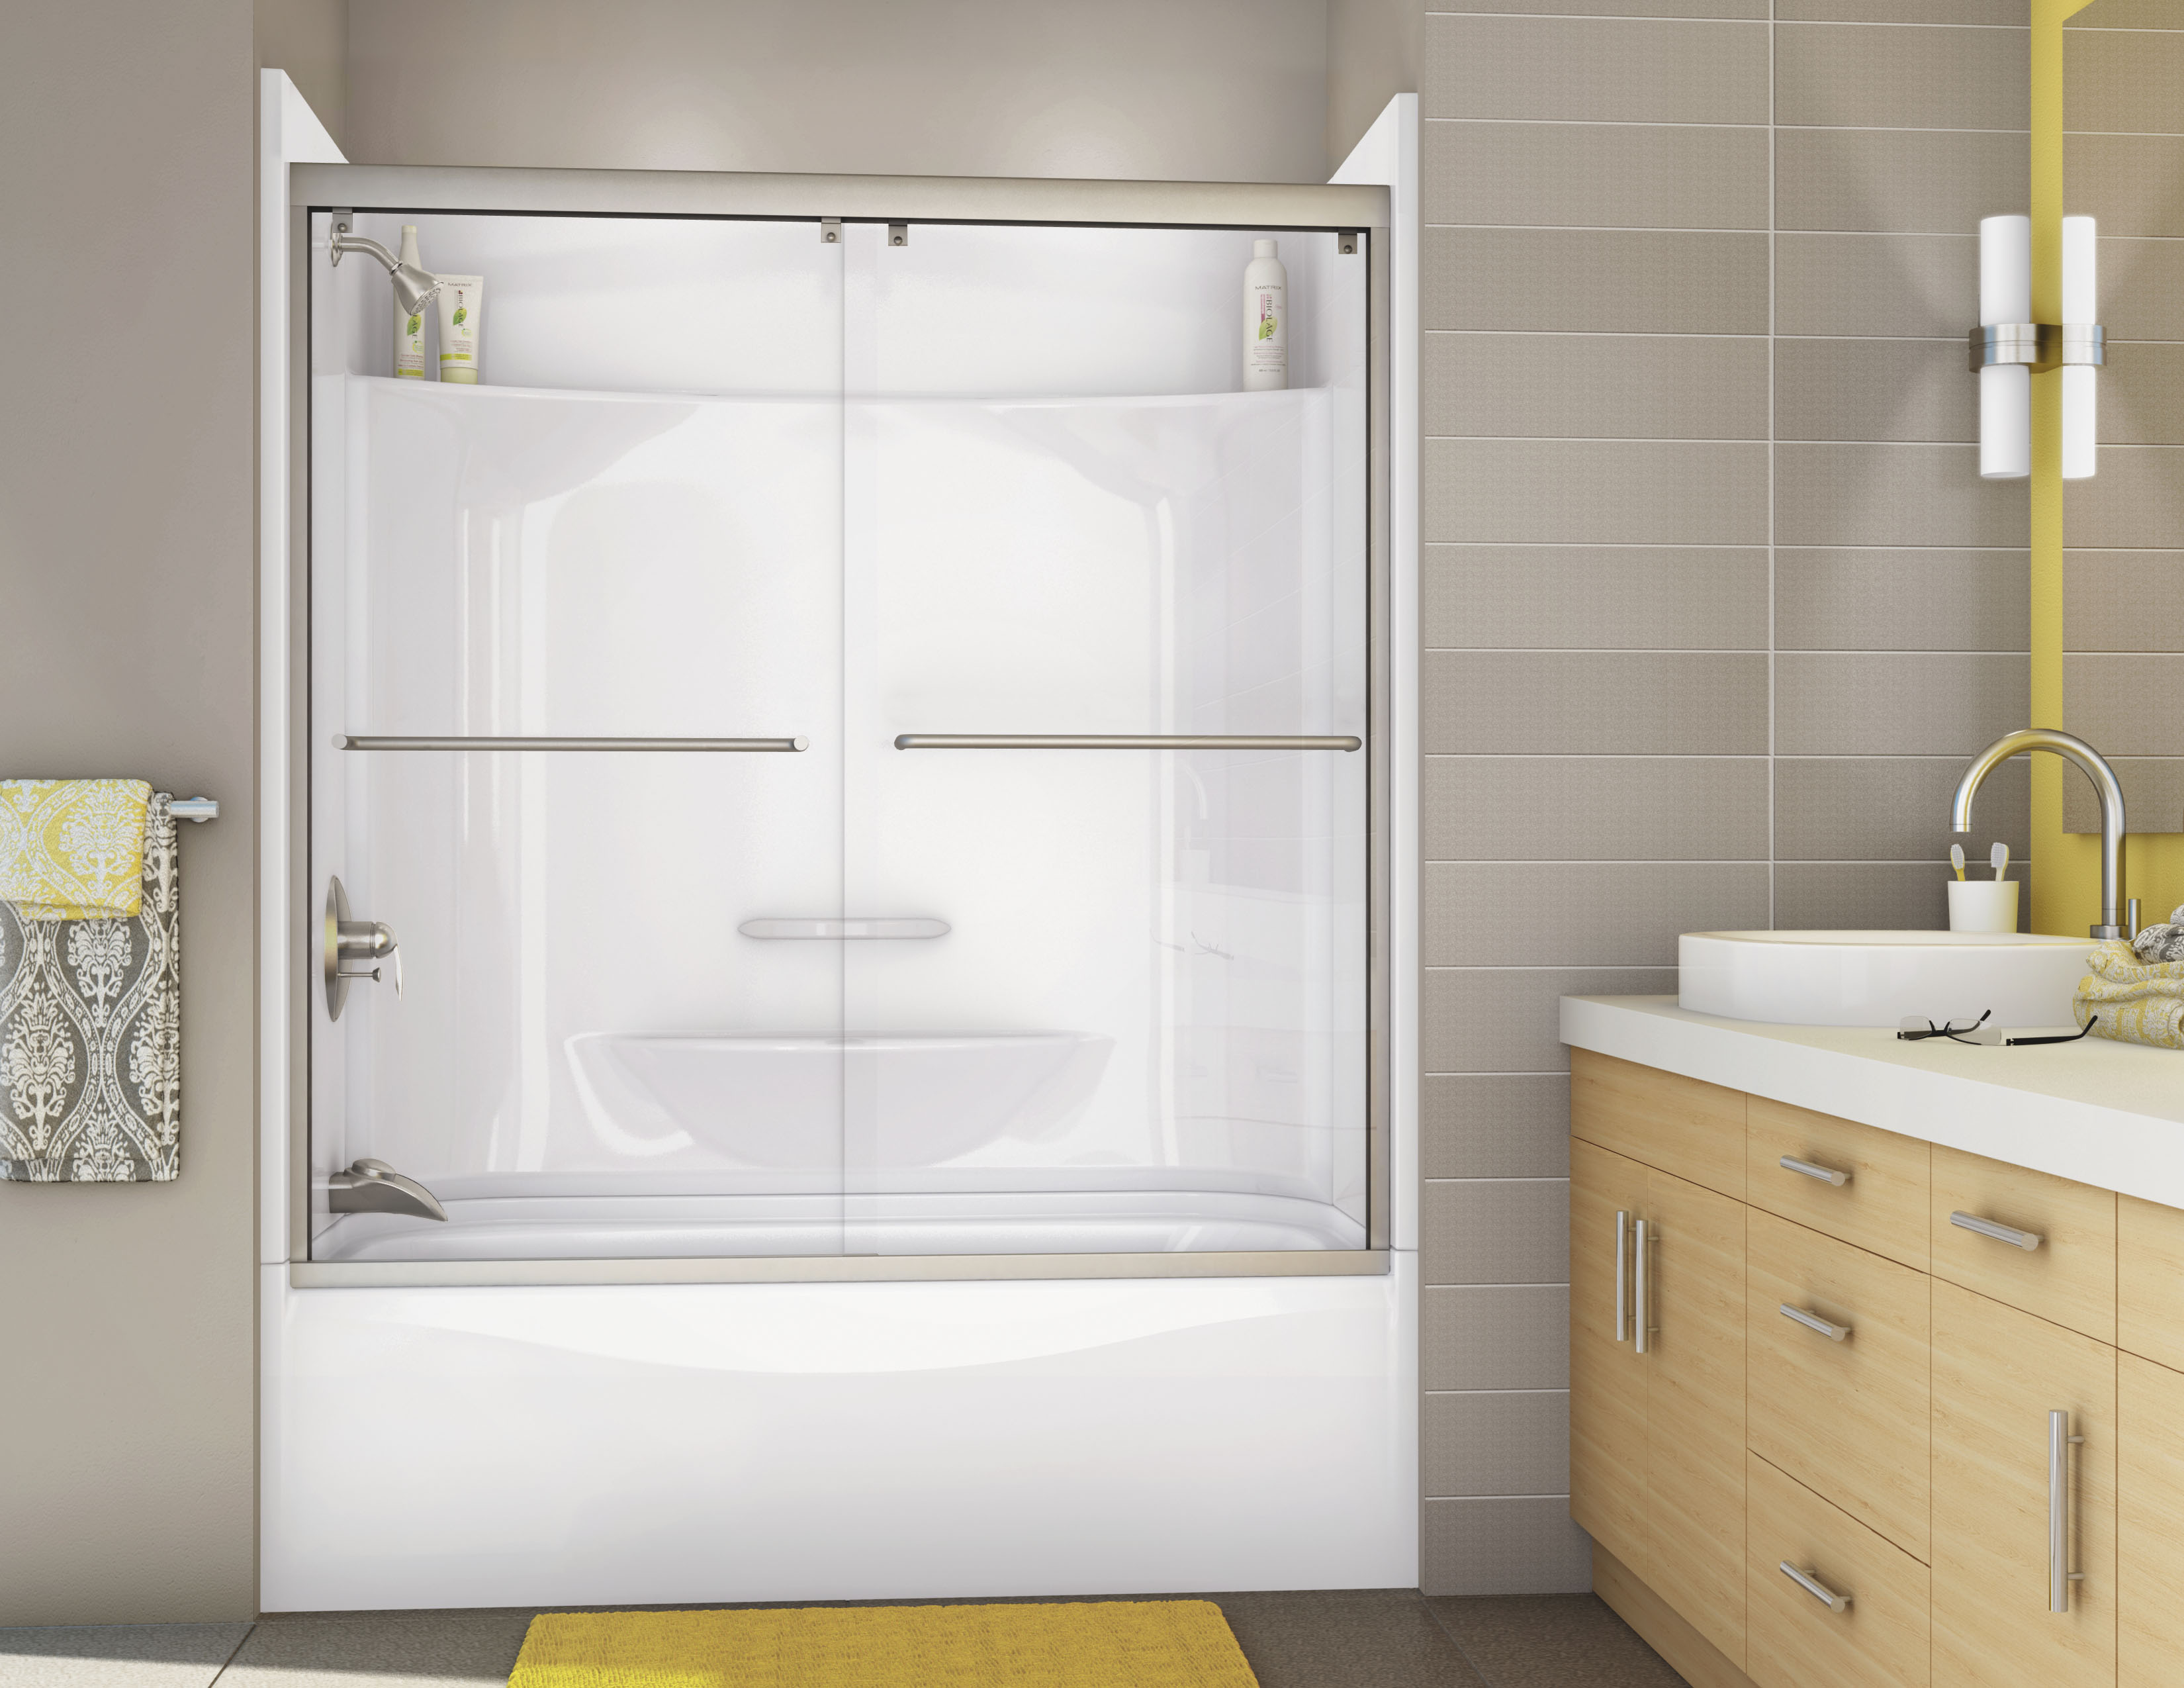 Helpful Tips For Renovating Your Bathroom